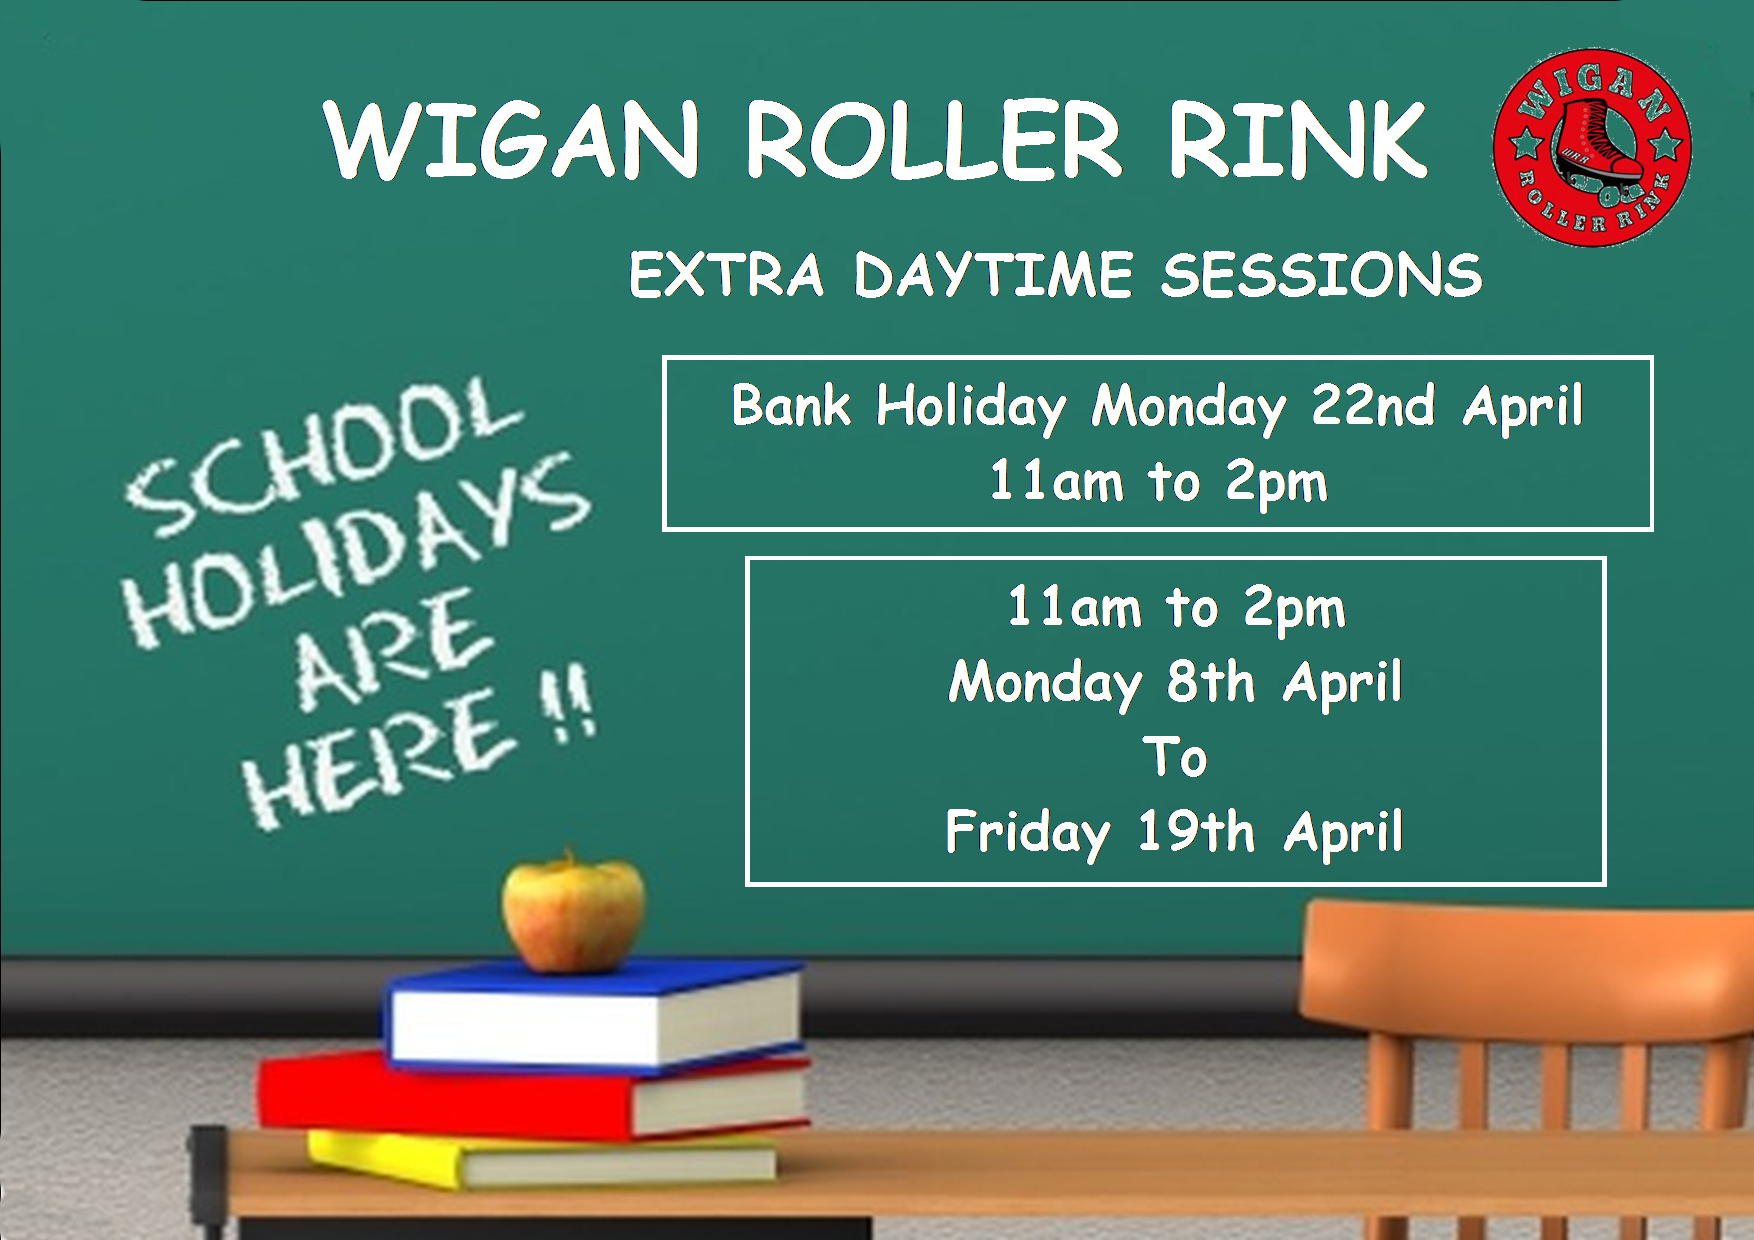 Easter Holiday Family Skating Mon 8th - Mon 22nd April 11am - 2pm